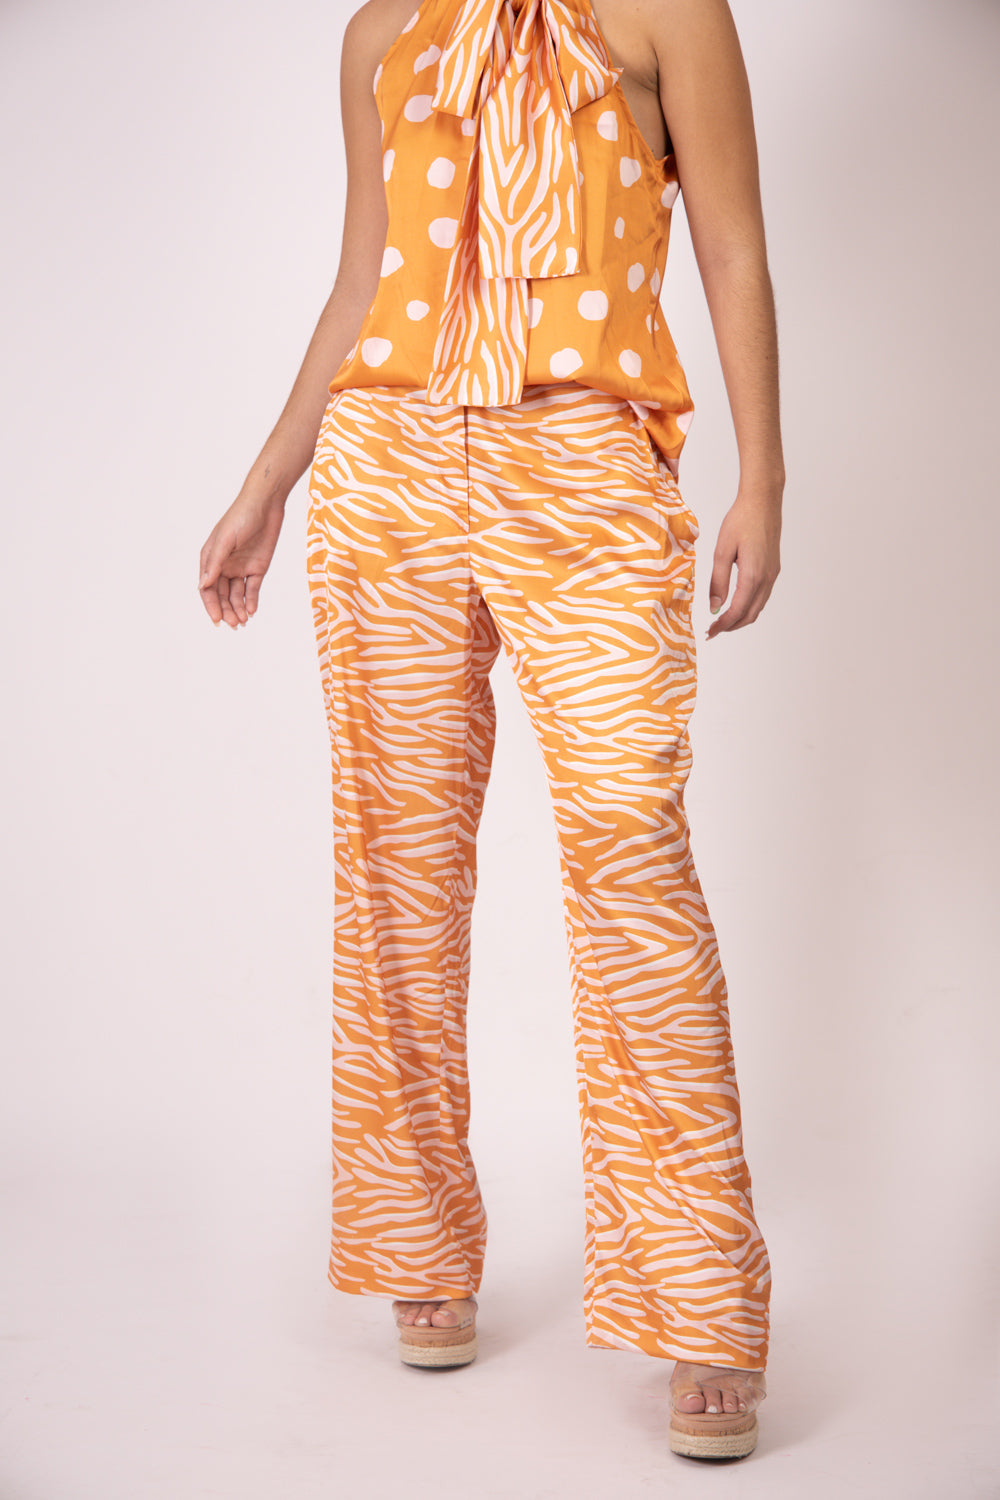 Silk Pants - Orange Zebra